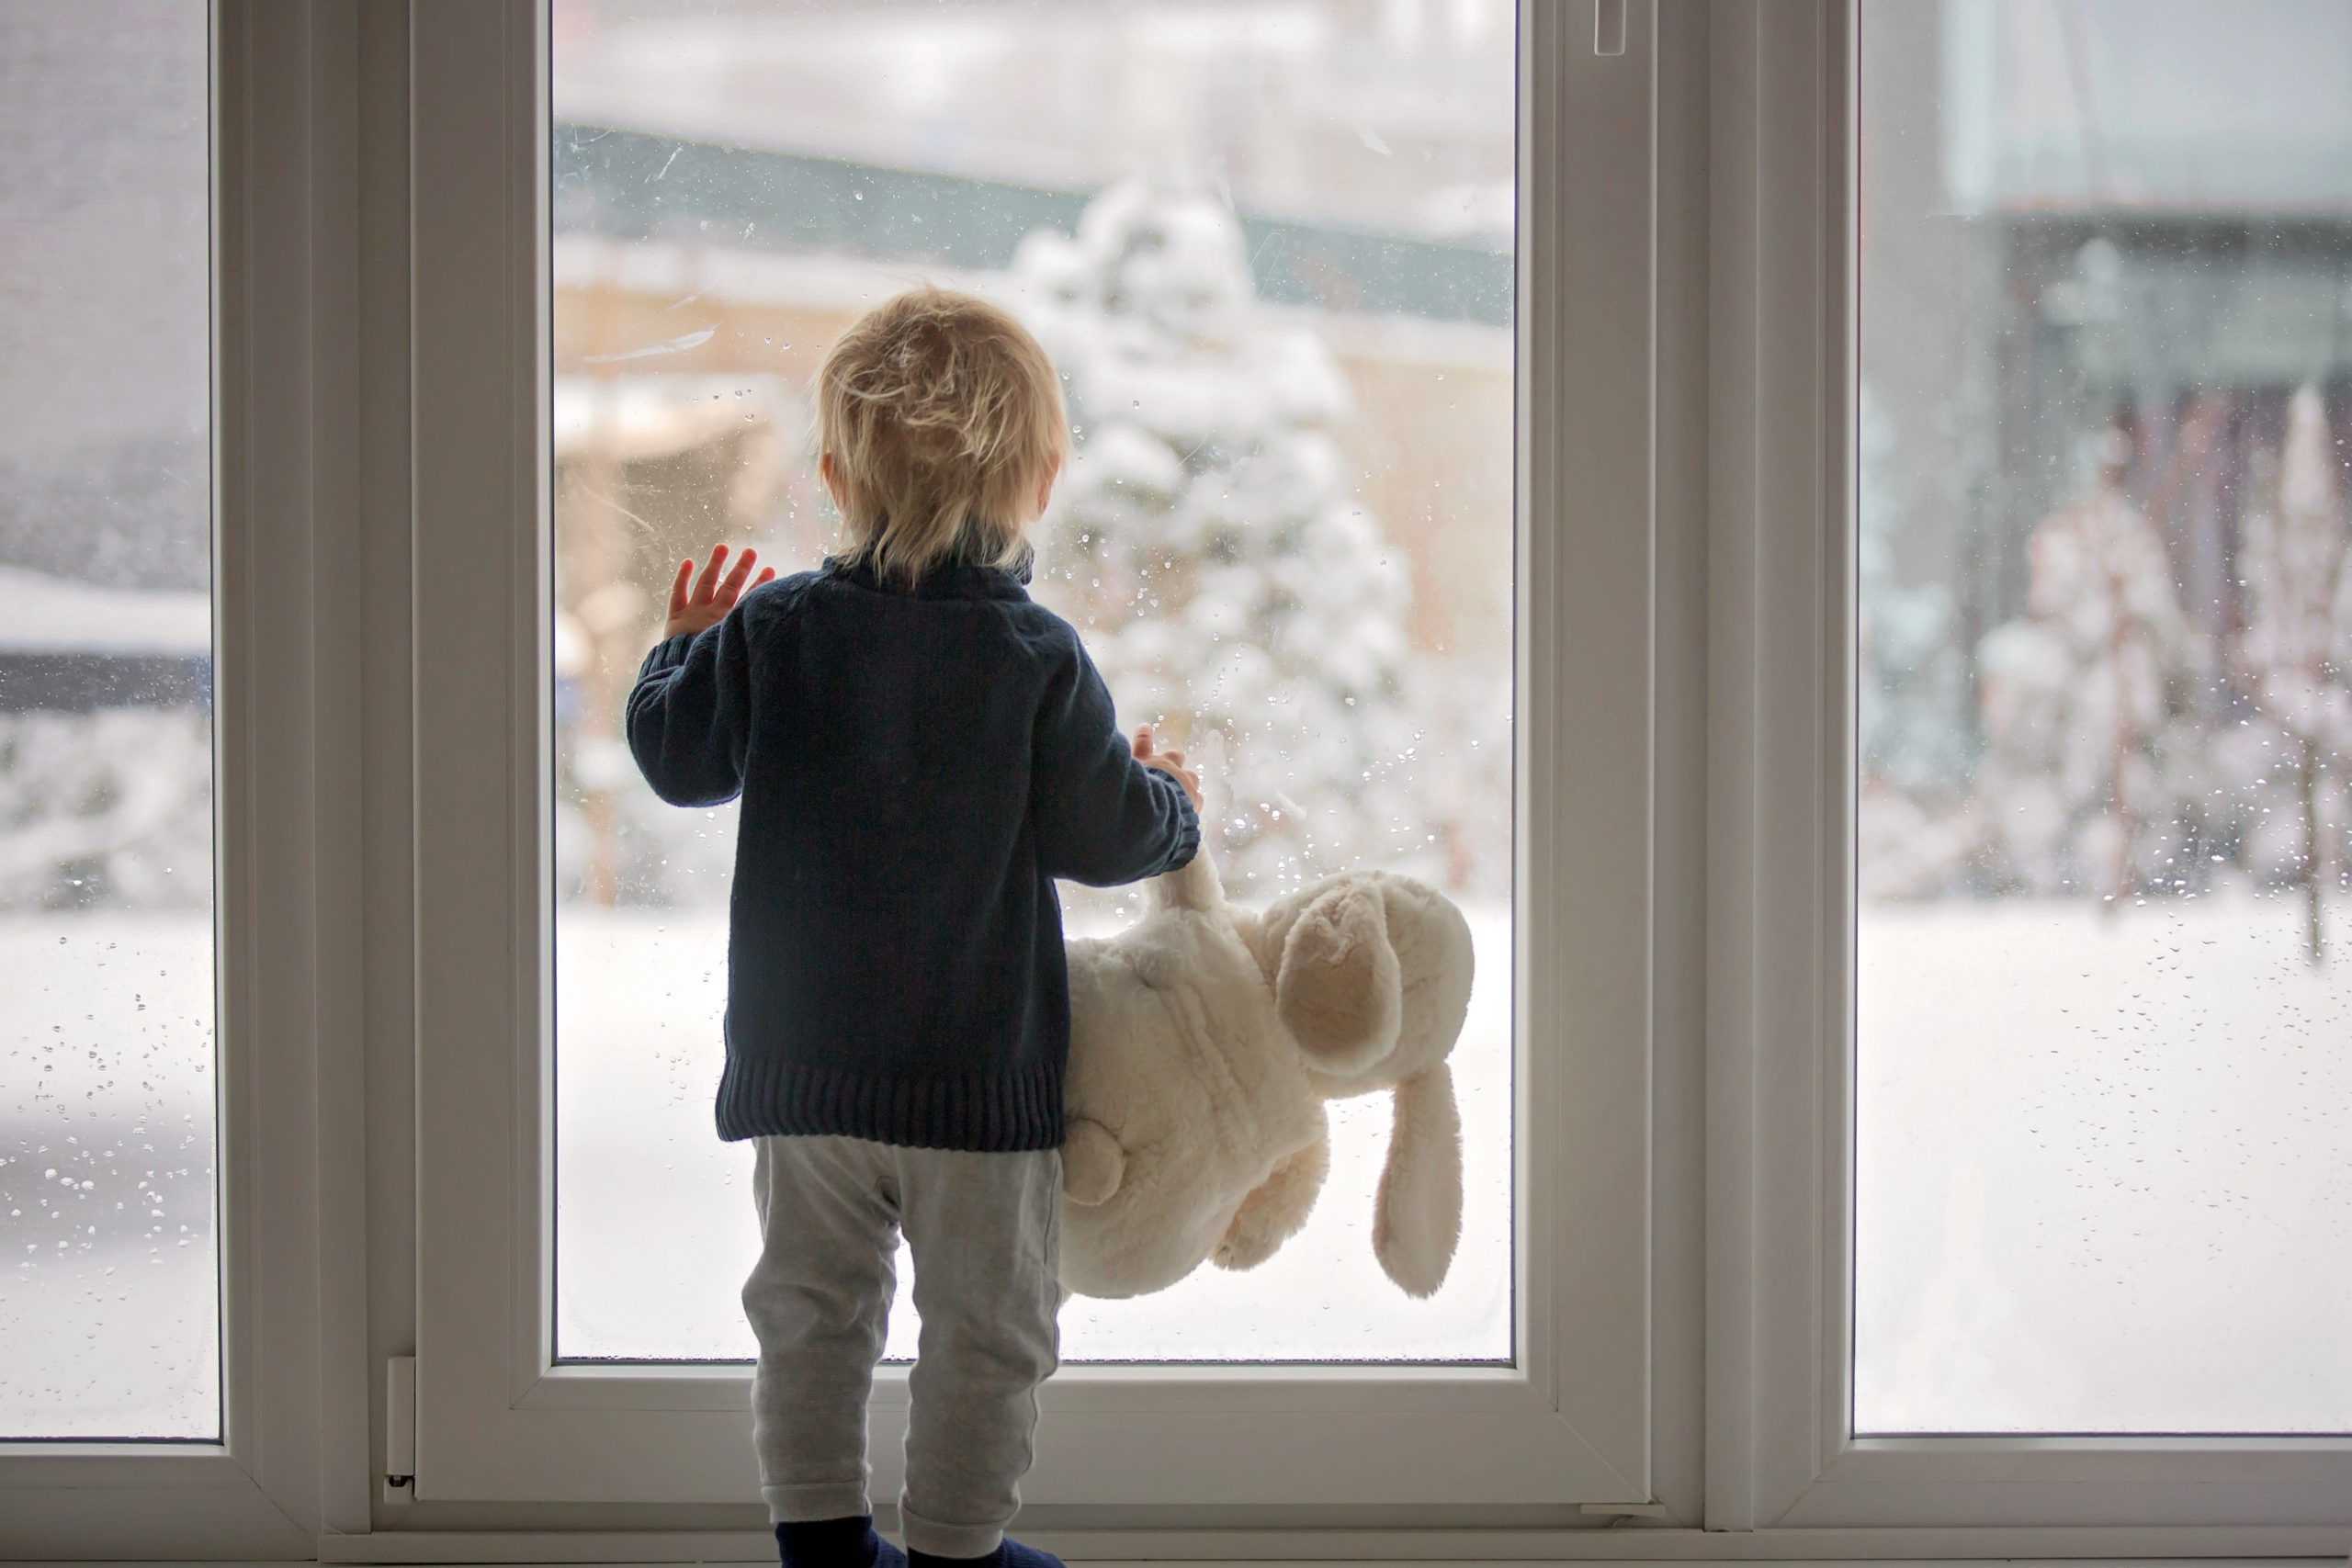 Young Boy Holding A Stuffed Bunny Rabbit In Front Of A Glass Door Looking Out At The Snow